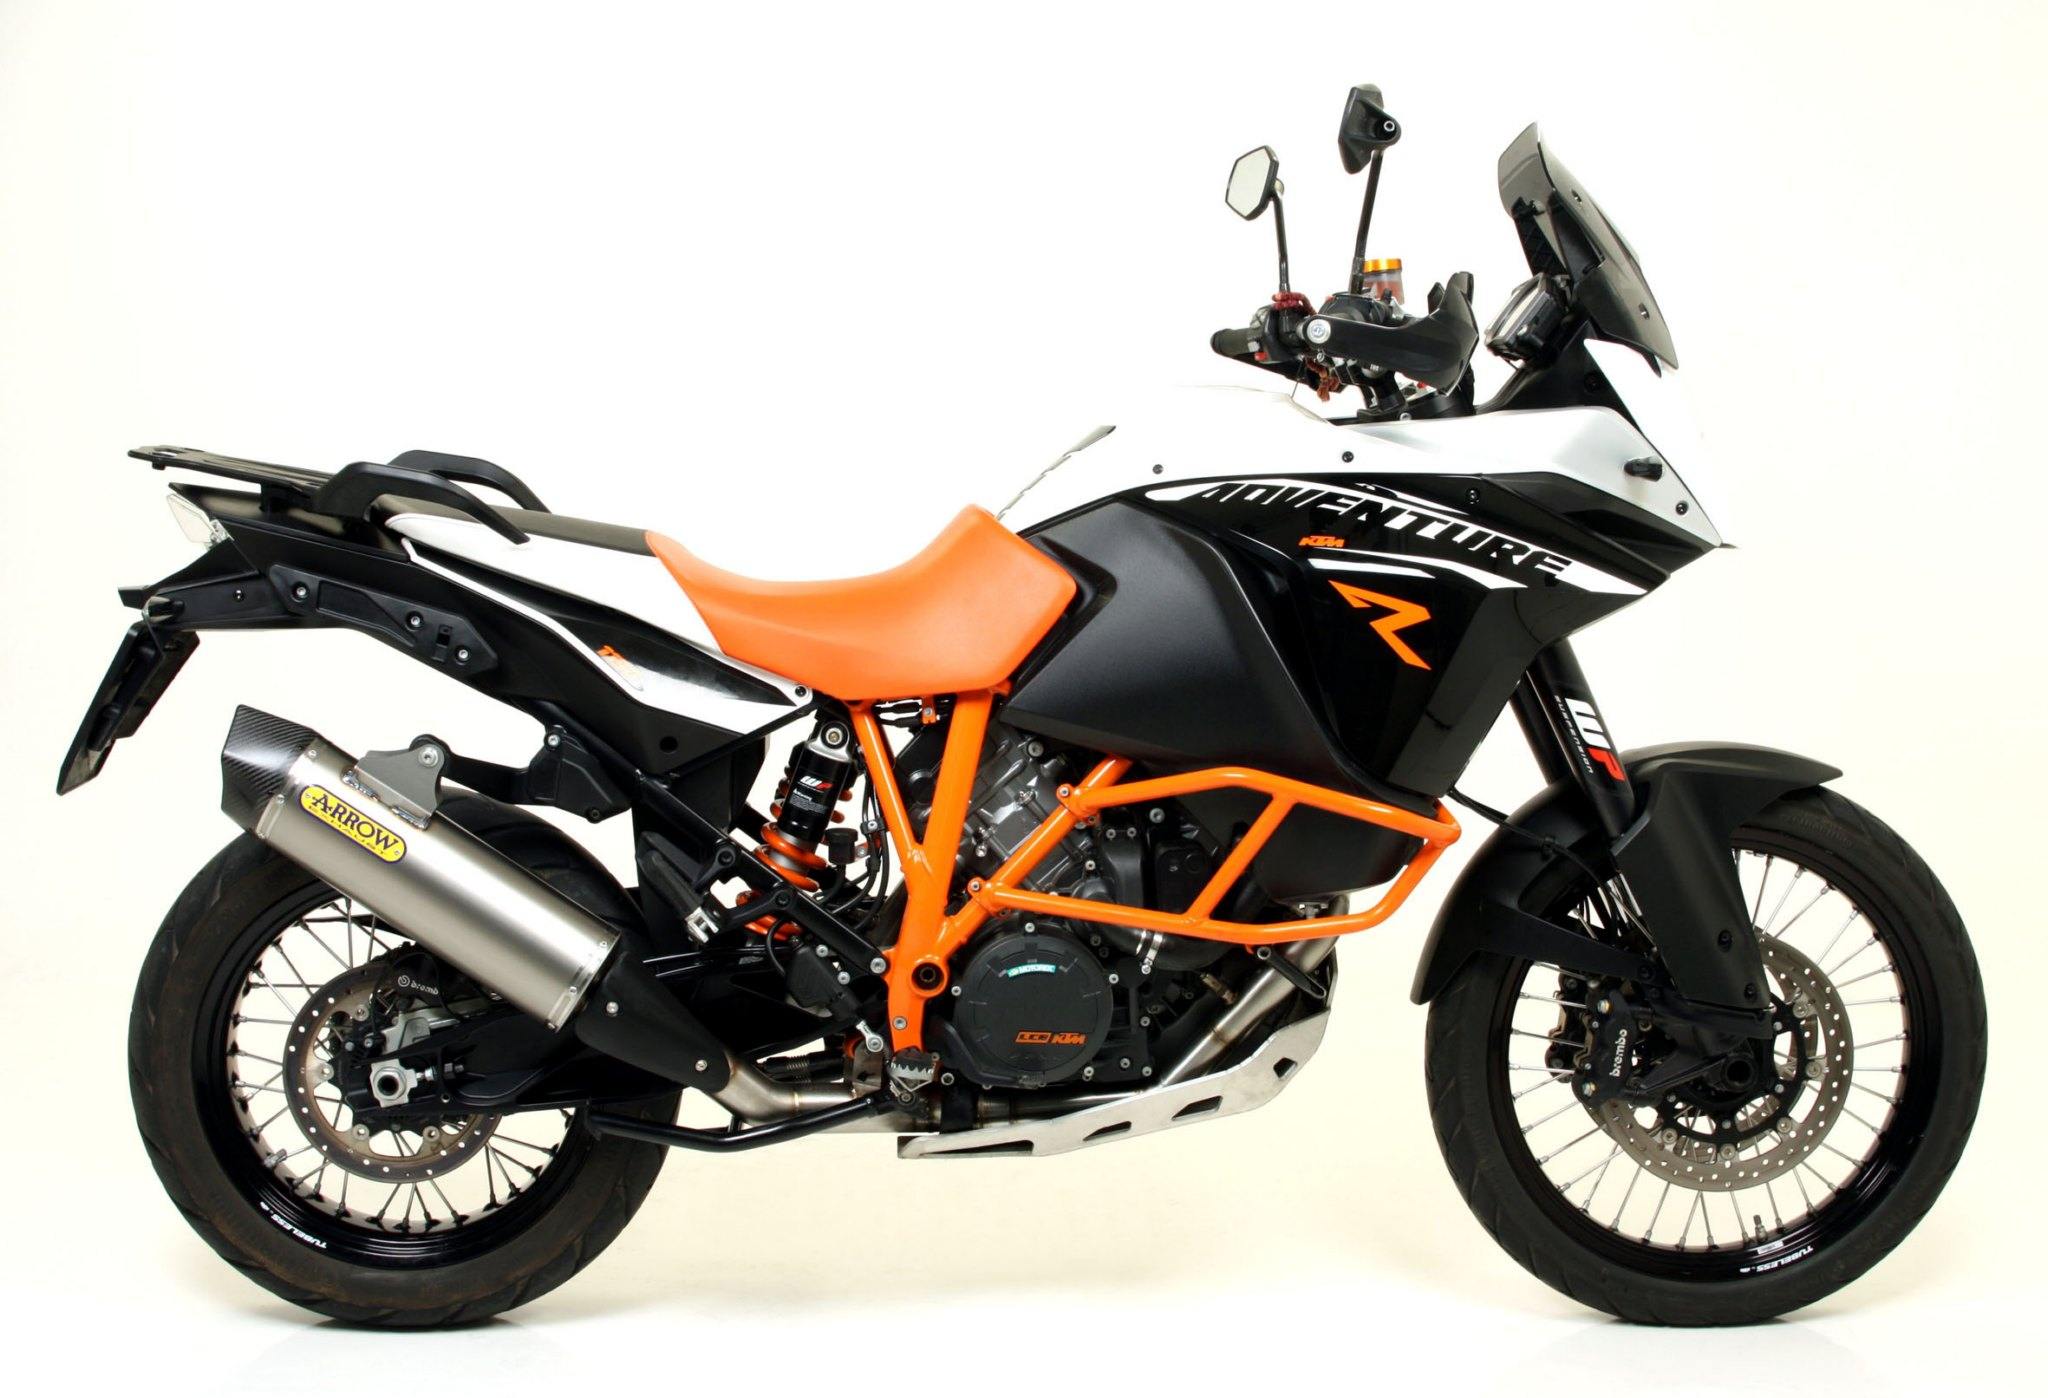 racing arrow exhaust for ktm 1190 adventure r autoevolution. Black Bedroom Furniture Sets. Home Design Ideas